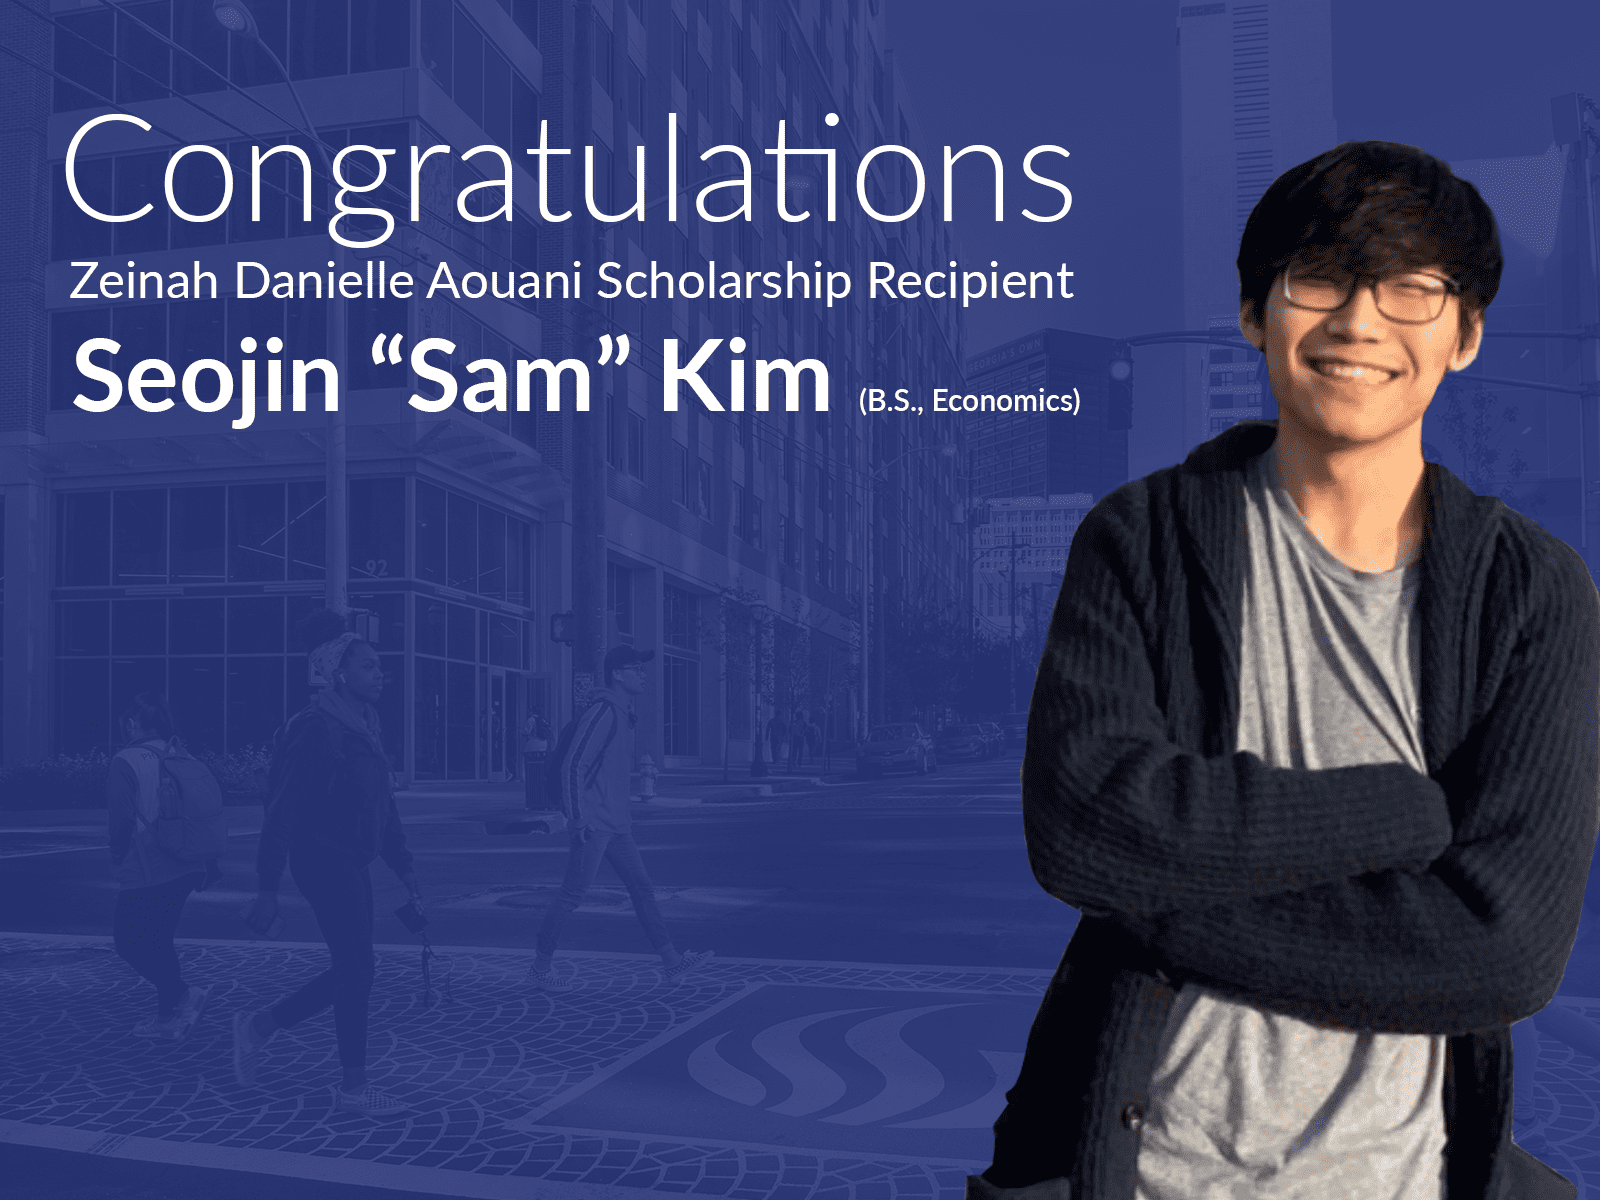 "Seojin ""Sam"" Kim (B.S. in Economics) received the first Zeinah Danielle Aouani scholarship"